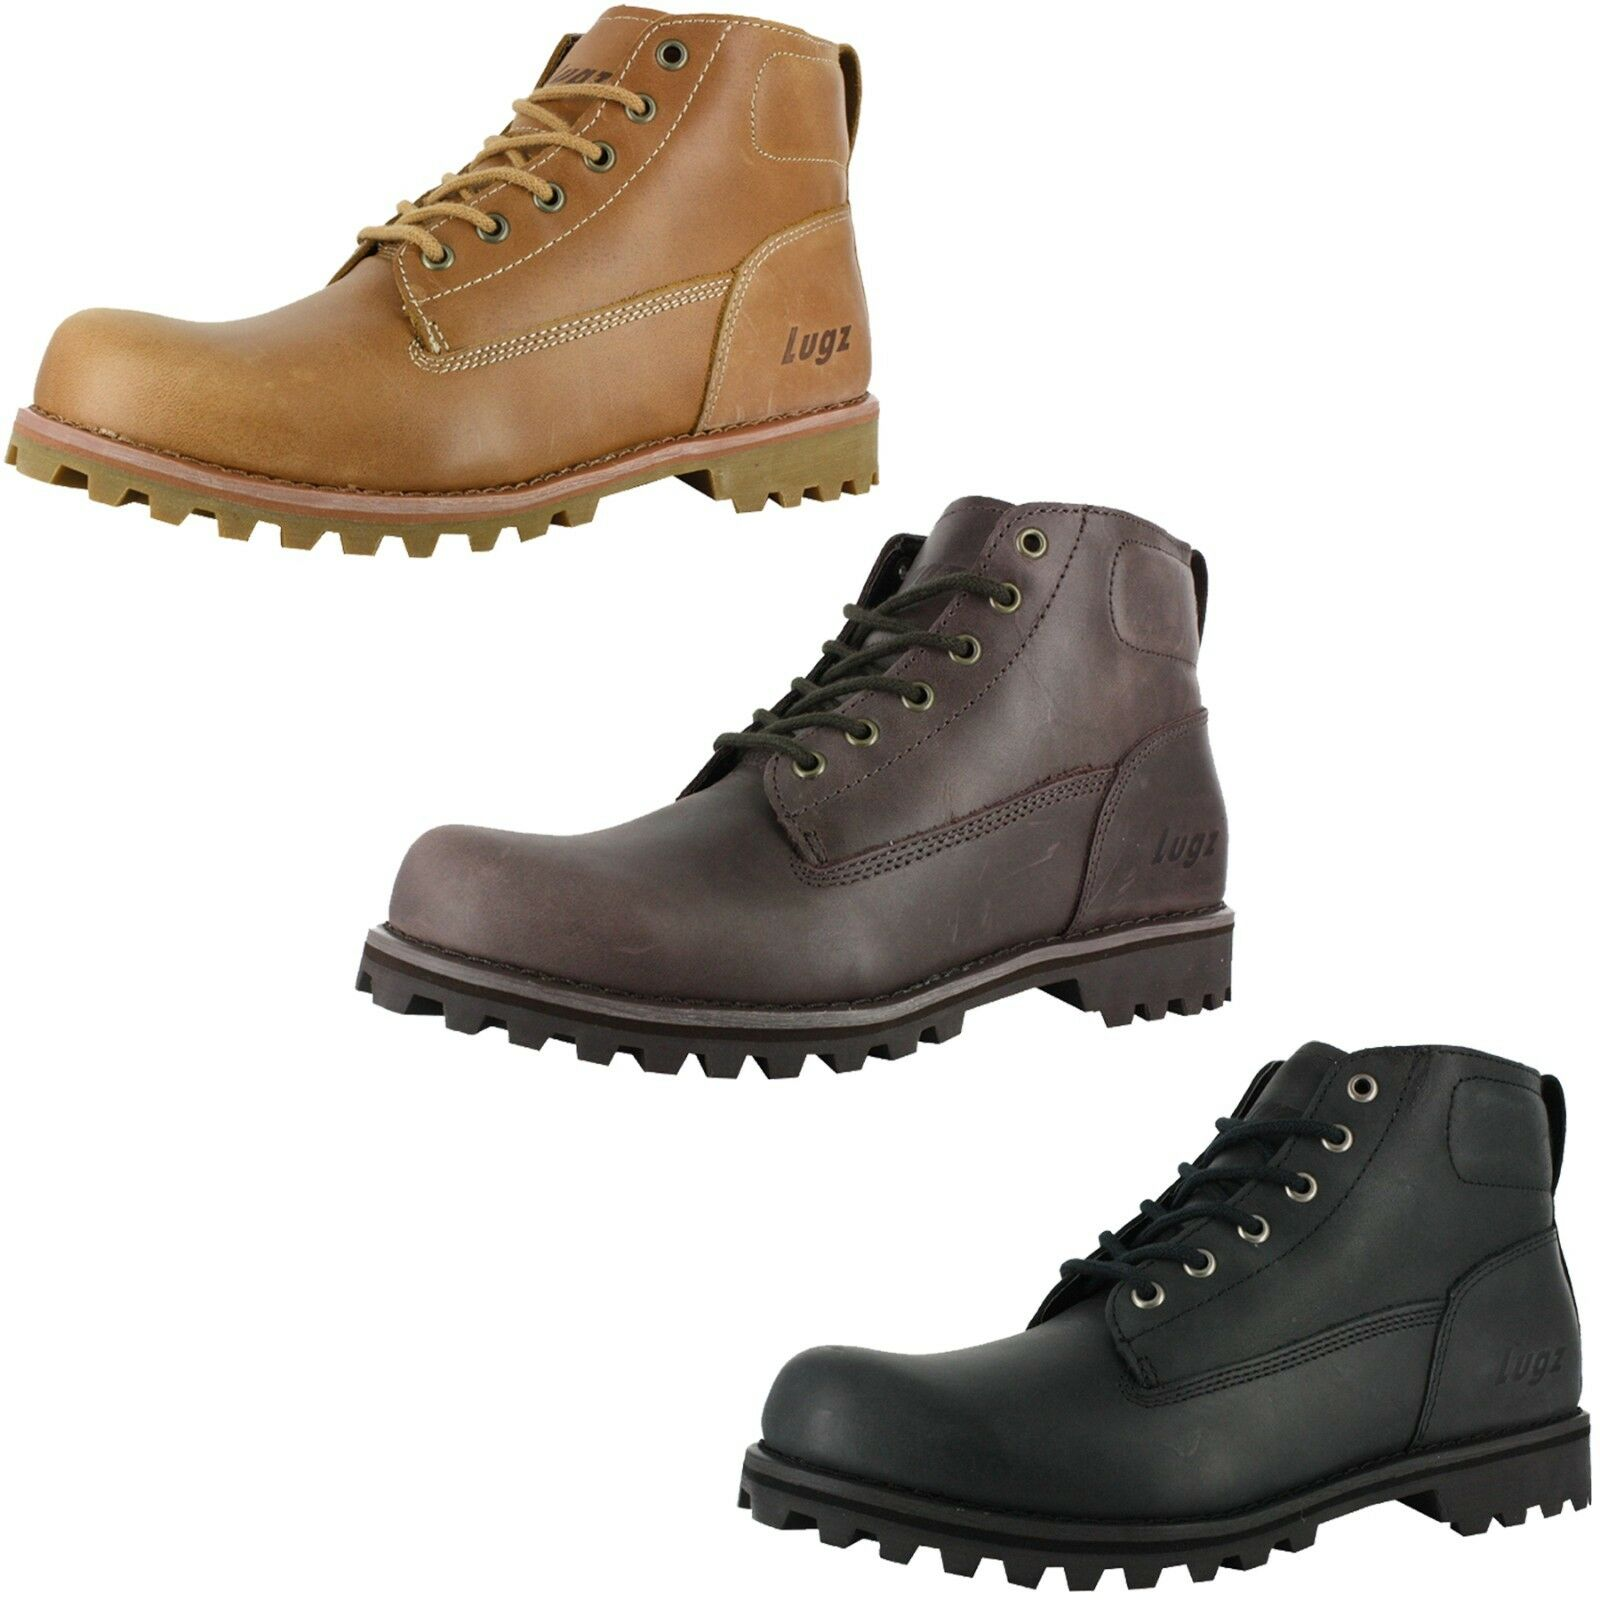 hommes LUGZ METRO LACE UP COMFORT CUSHION CASUAL bottes